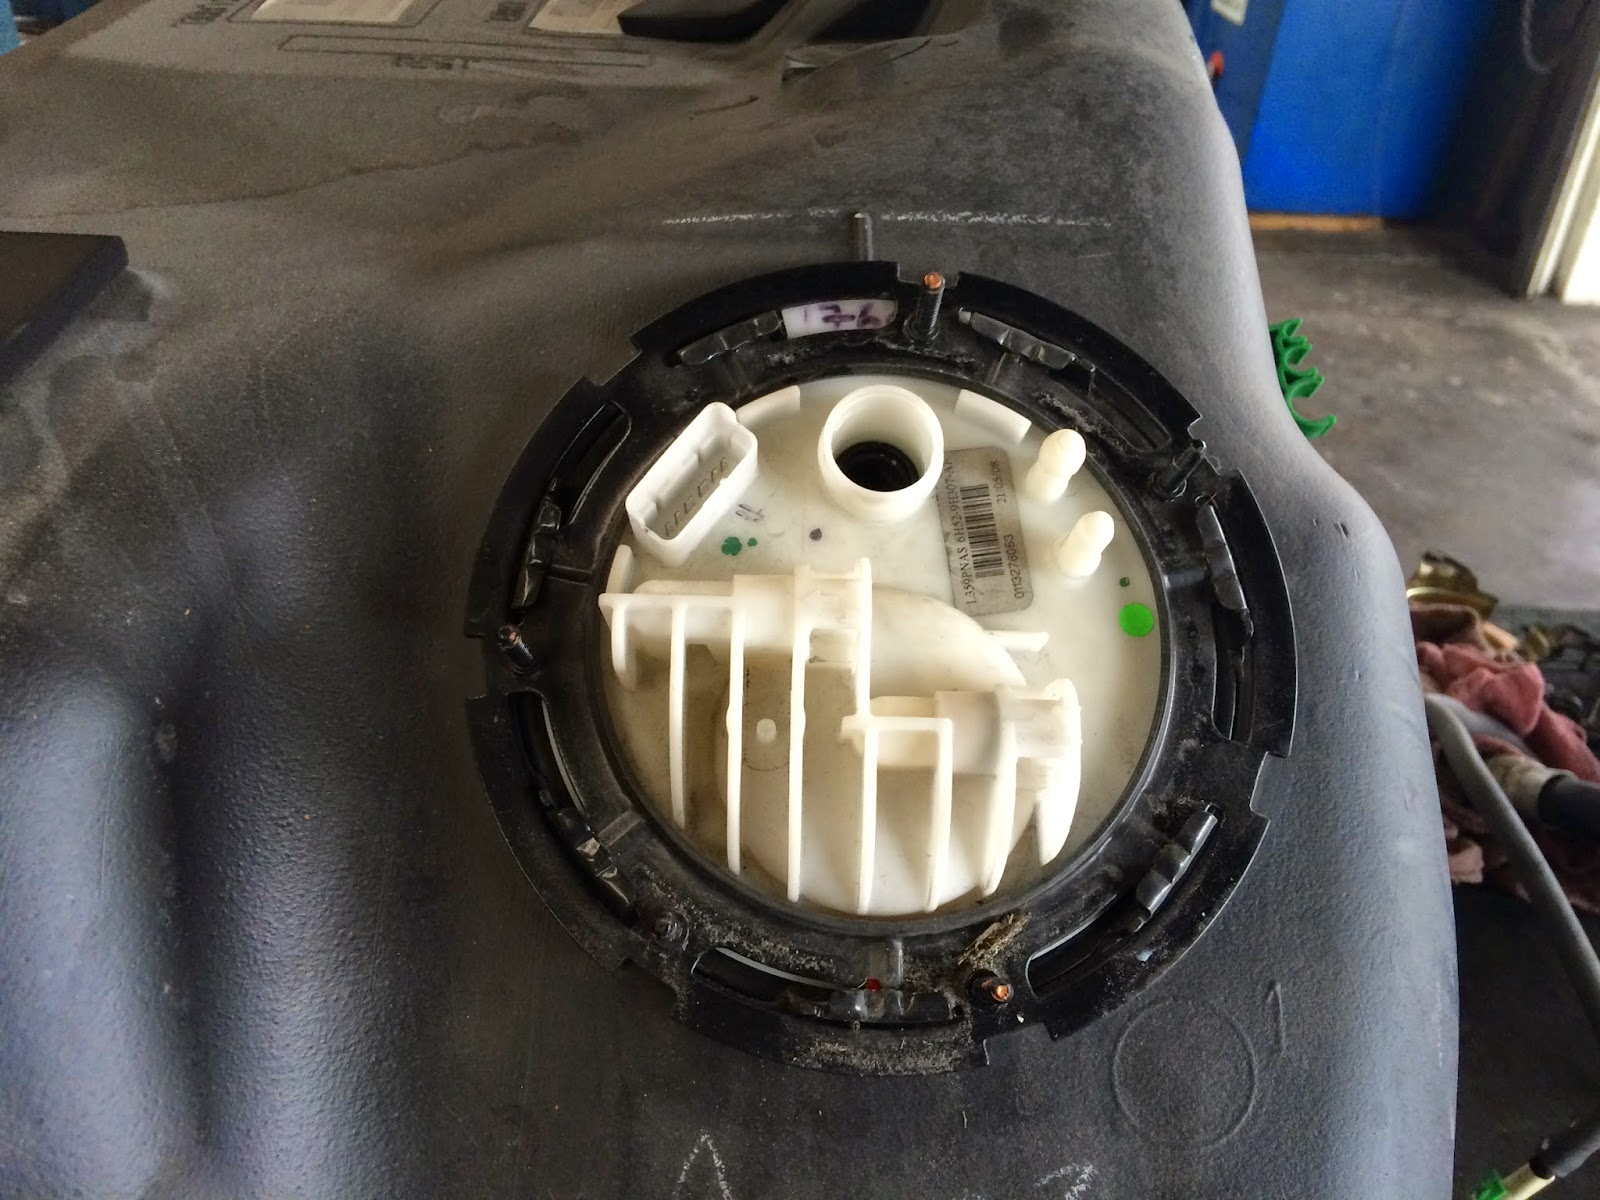 With a BRASS punch remove the metal holder. Use brass you don't want to  create sparks close to the fuel tank. Use safety goggles!!!